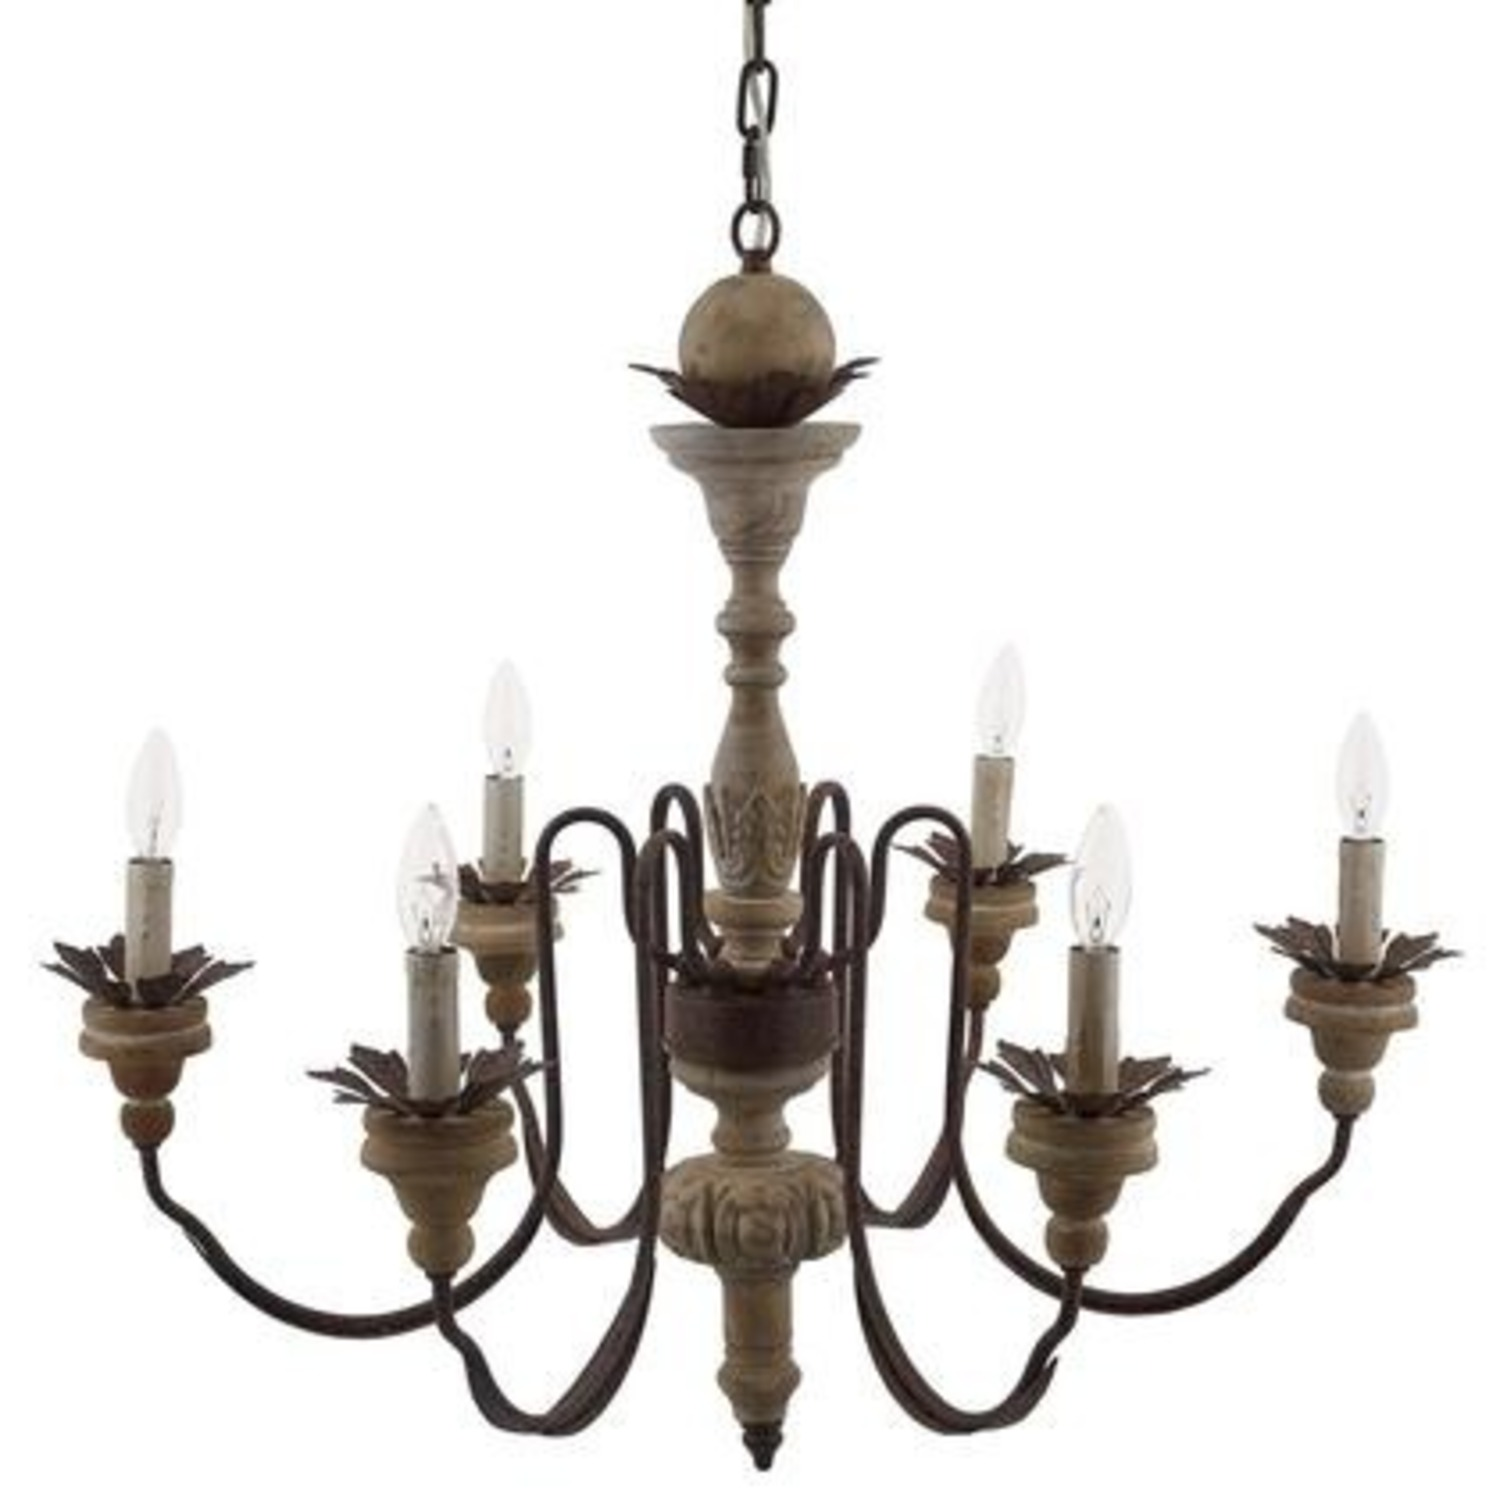 Vintage French Chandelier In Antique Metal Arms - image-1